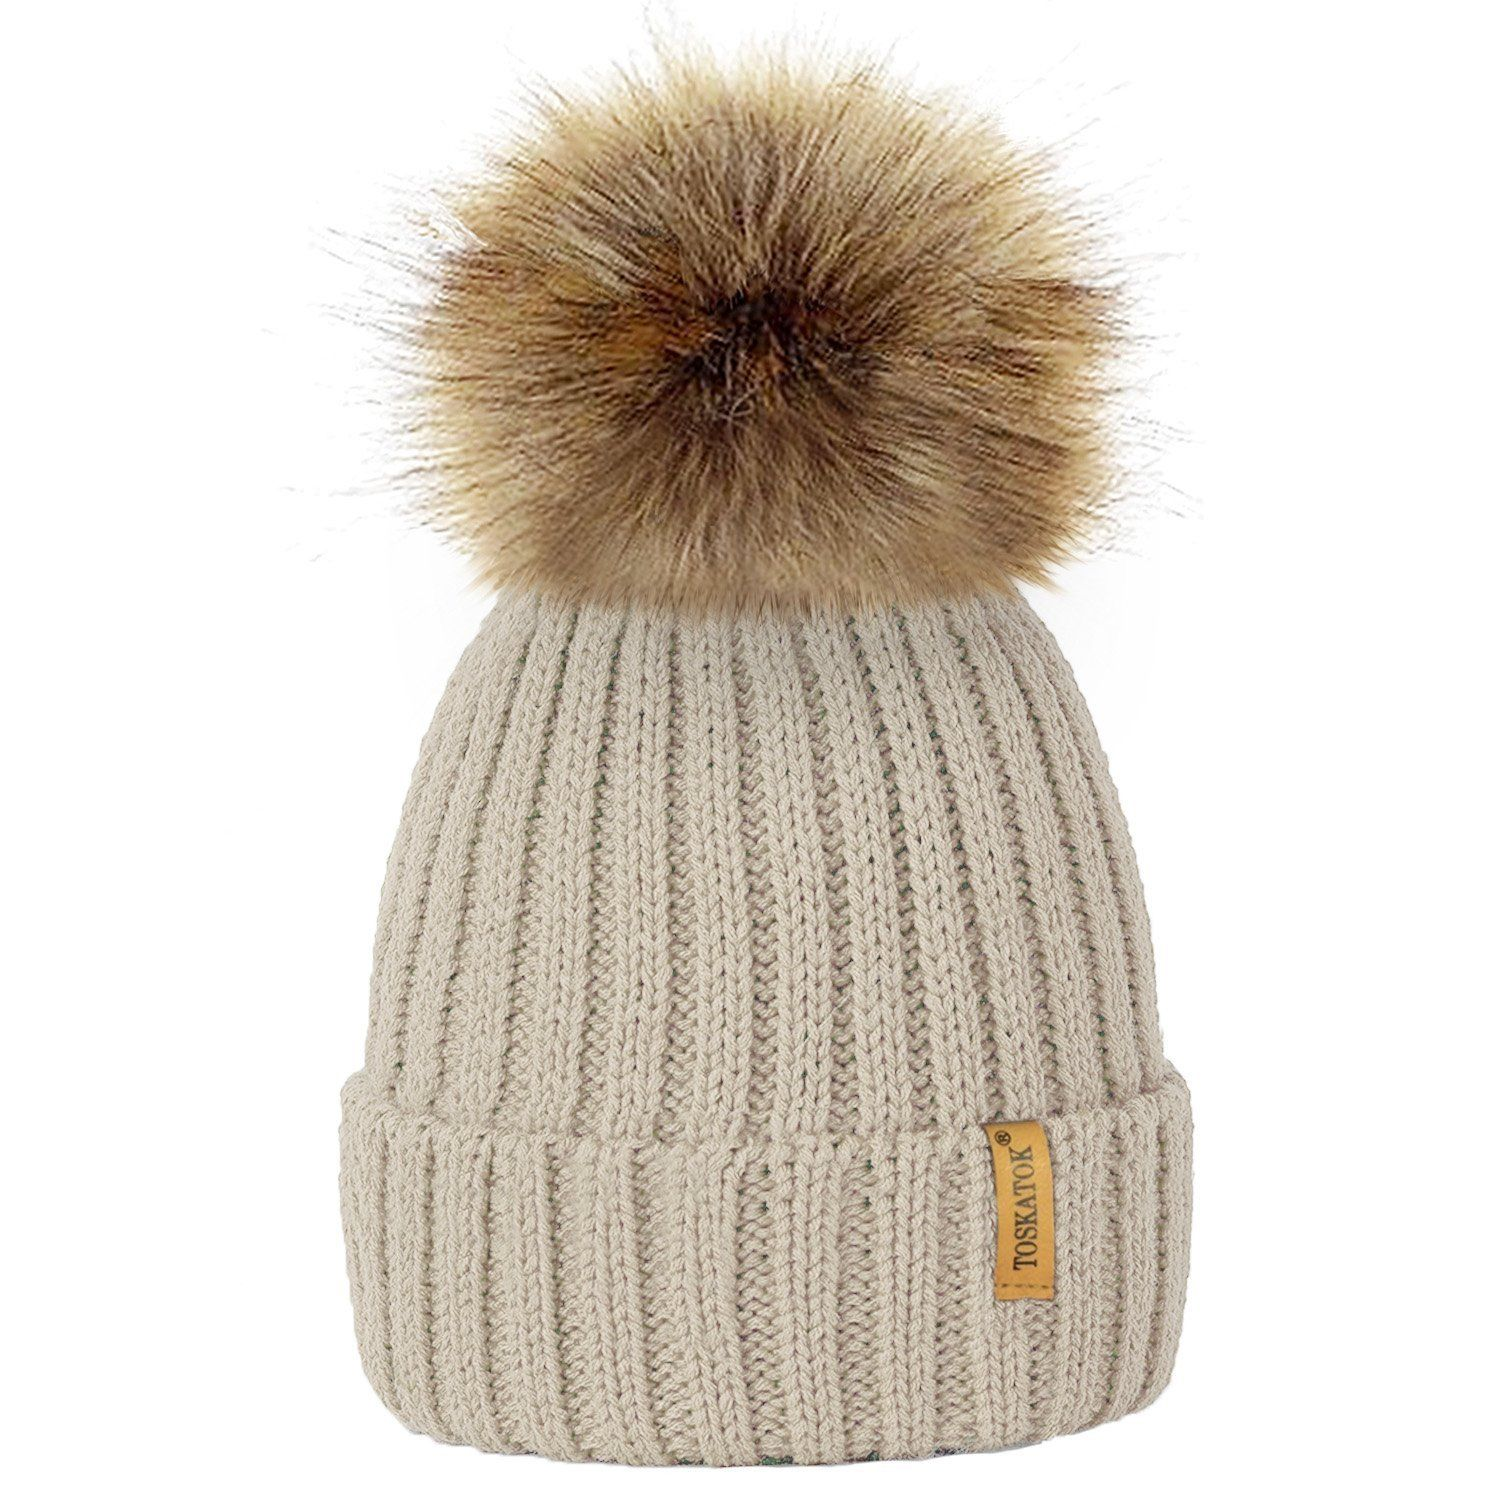 f18b4e21b53 Bobble Hats for him and her | Hats | Baby beanie hats, Fur pom pom ...